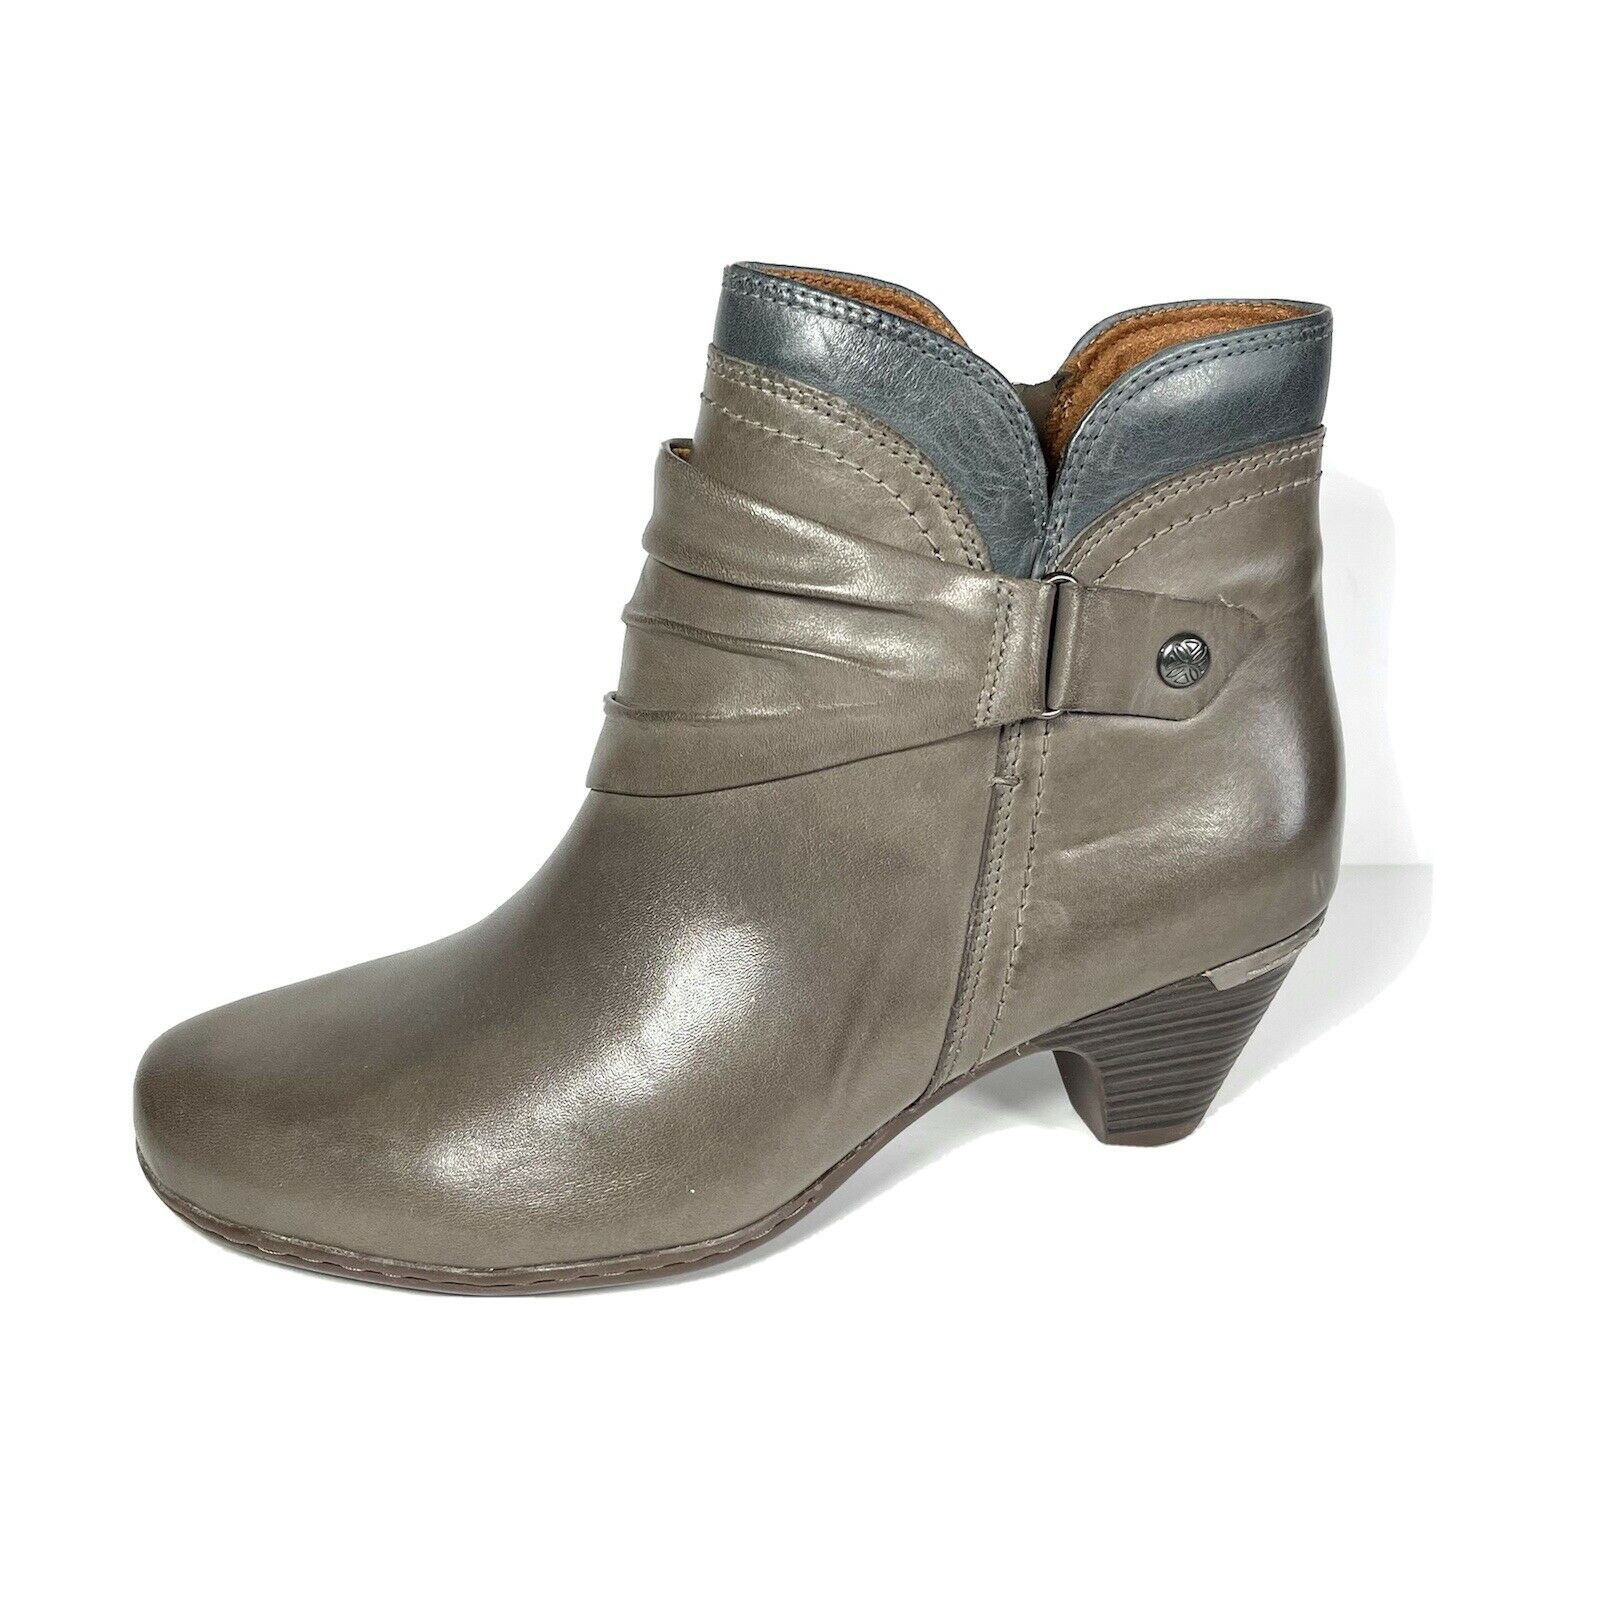 New Rockport Cobb Hill Womens Adaline Ankle Boots Gray Size 9